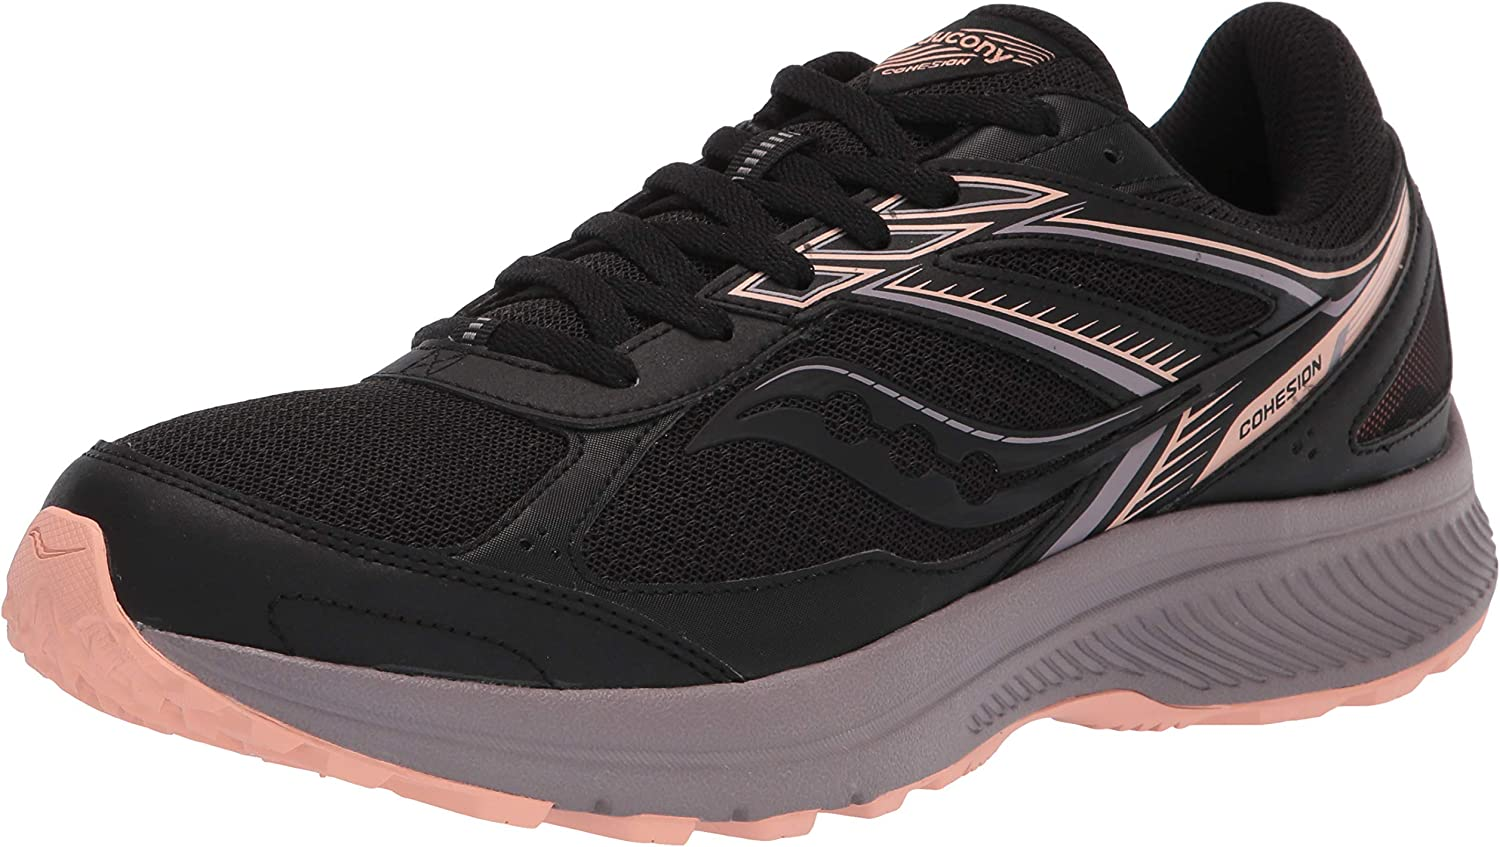 5 ☆ very popular Saucony Women's Cohesion Tr14 Trail Running Shoe Long-awaited